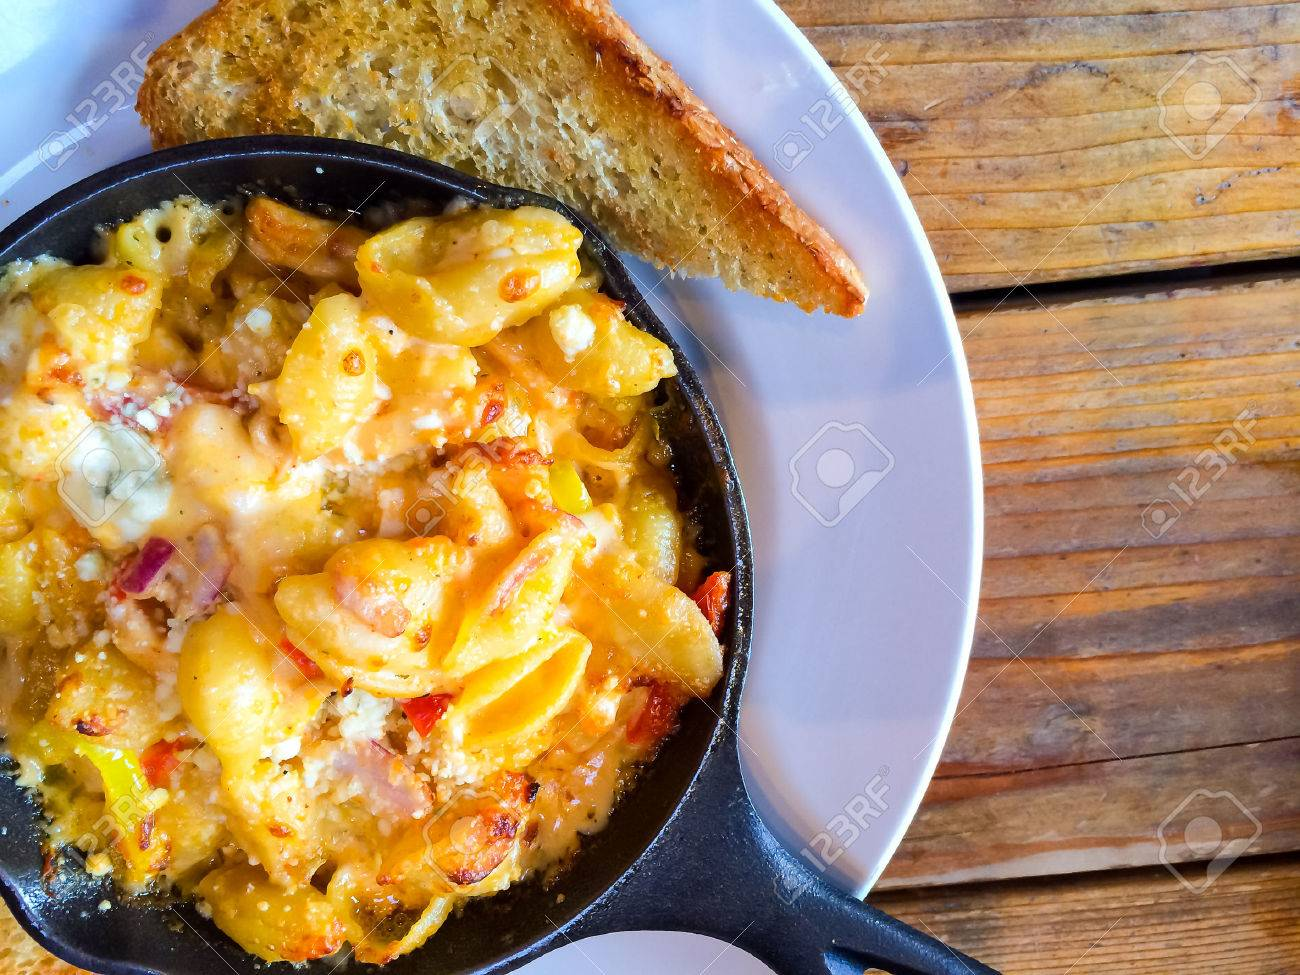 Fancy Restaurant Serves Baked Mac And Cheese In A Hot Skillet With A Side Of Texas